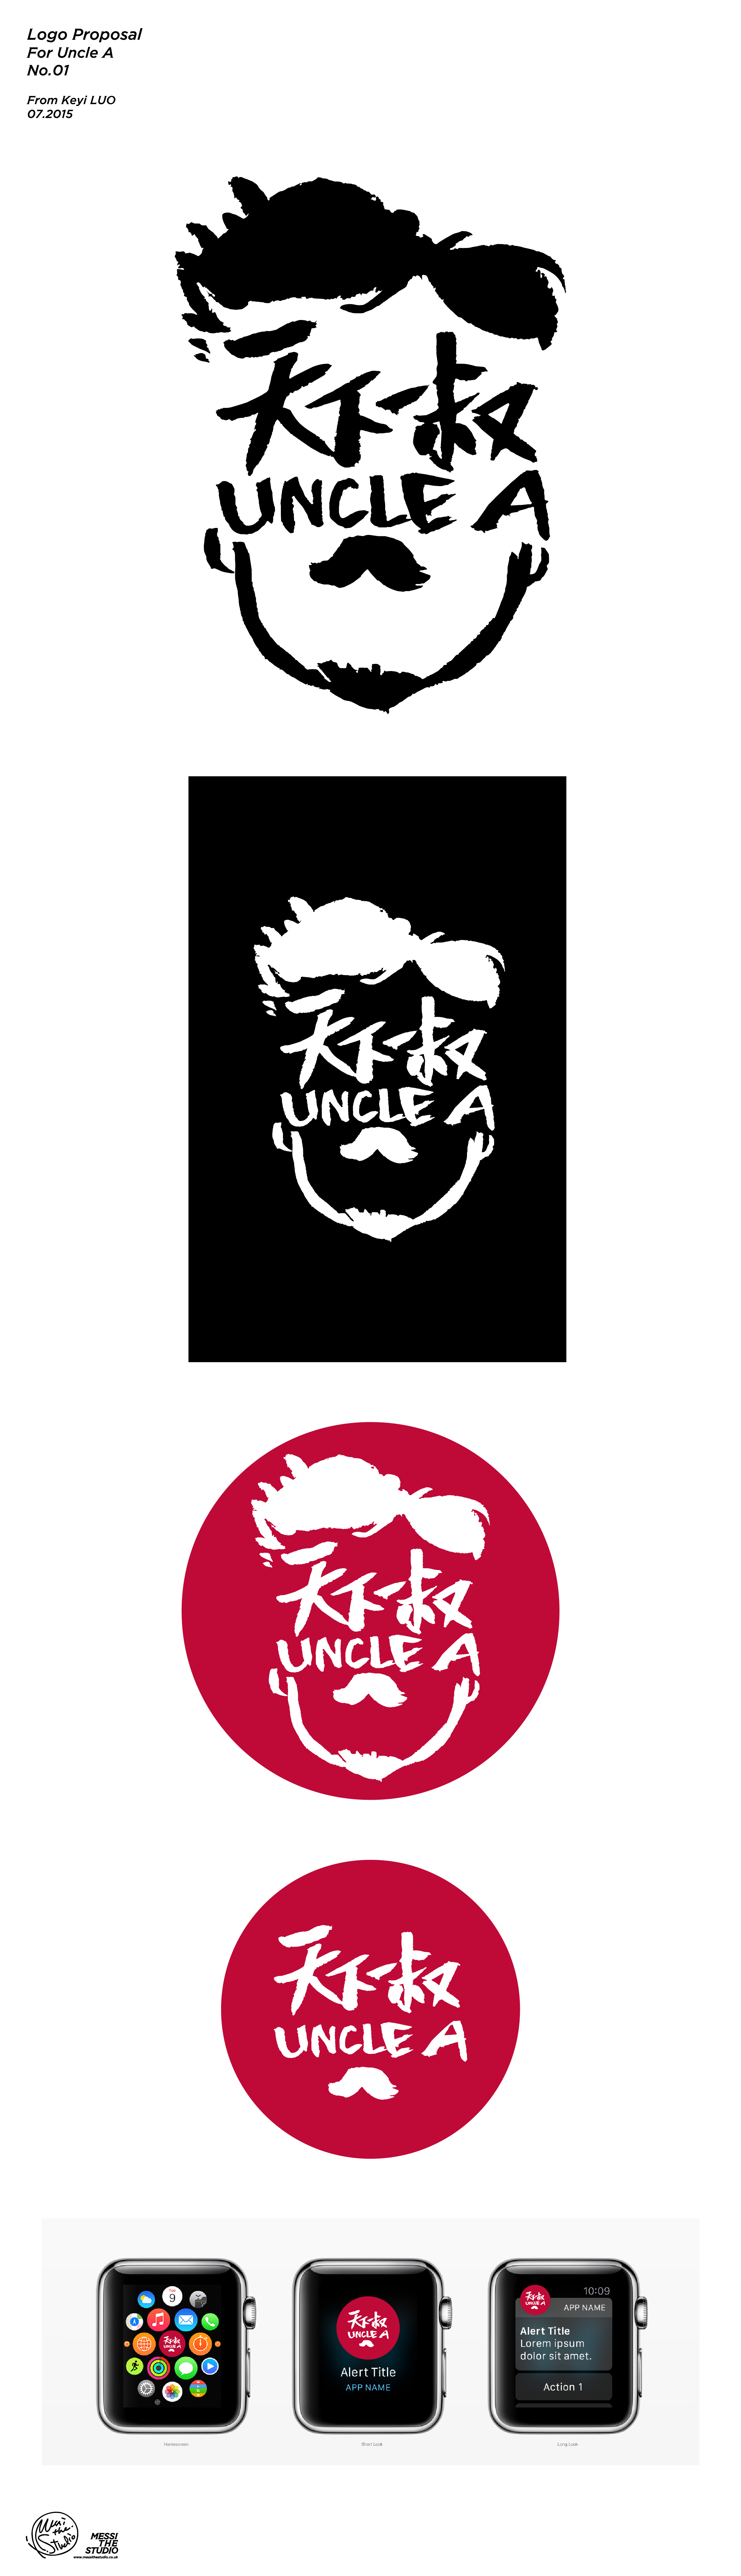 Uncle A Logo Keyi Luo